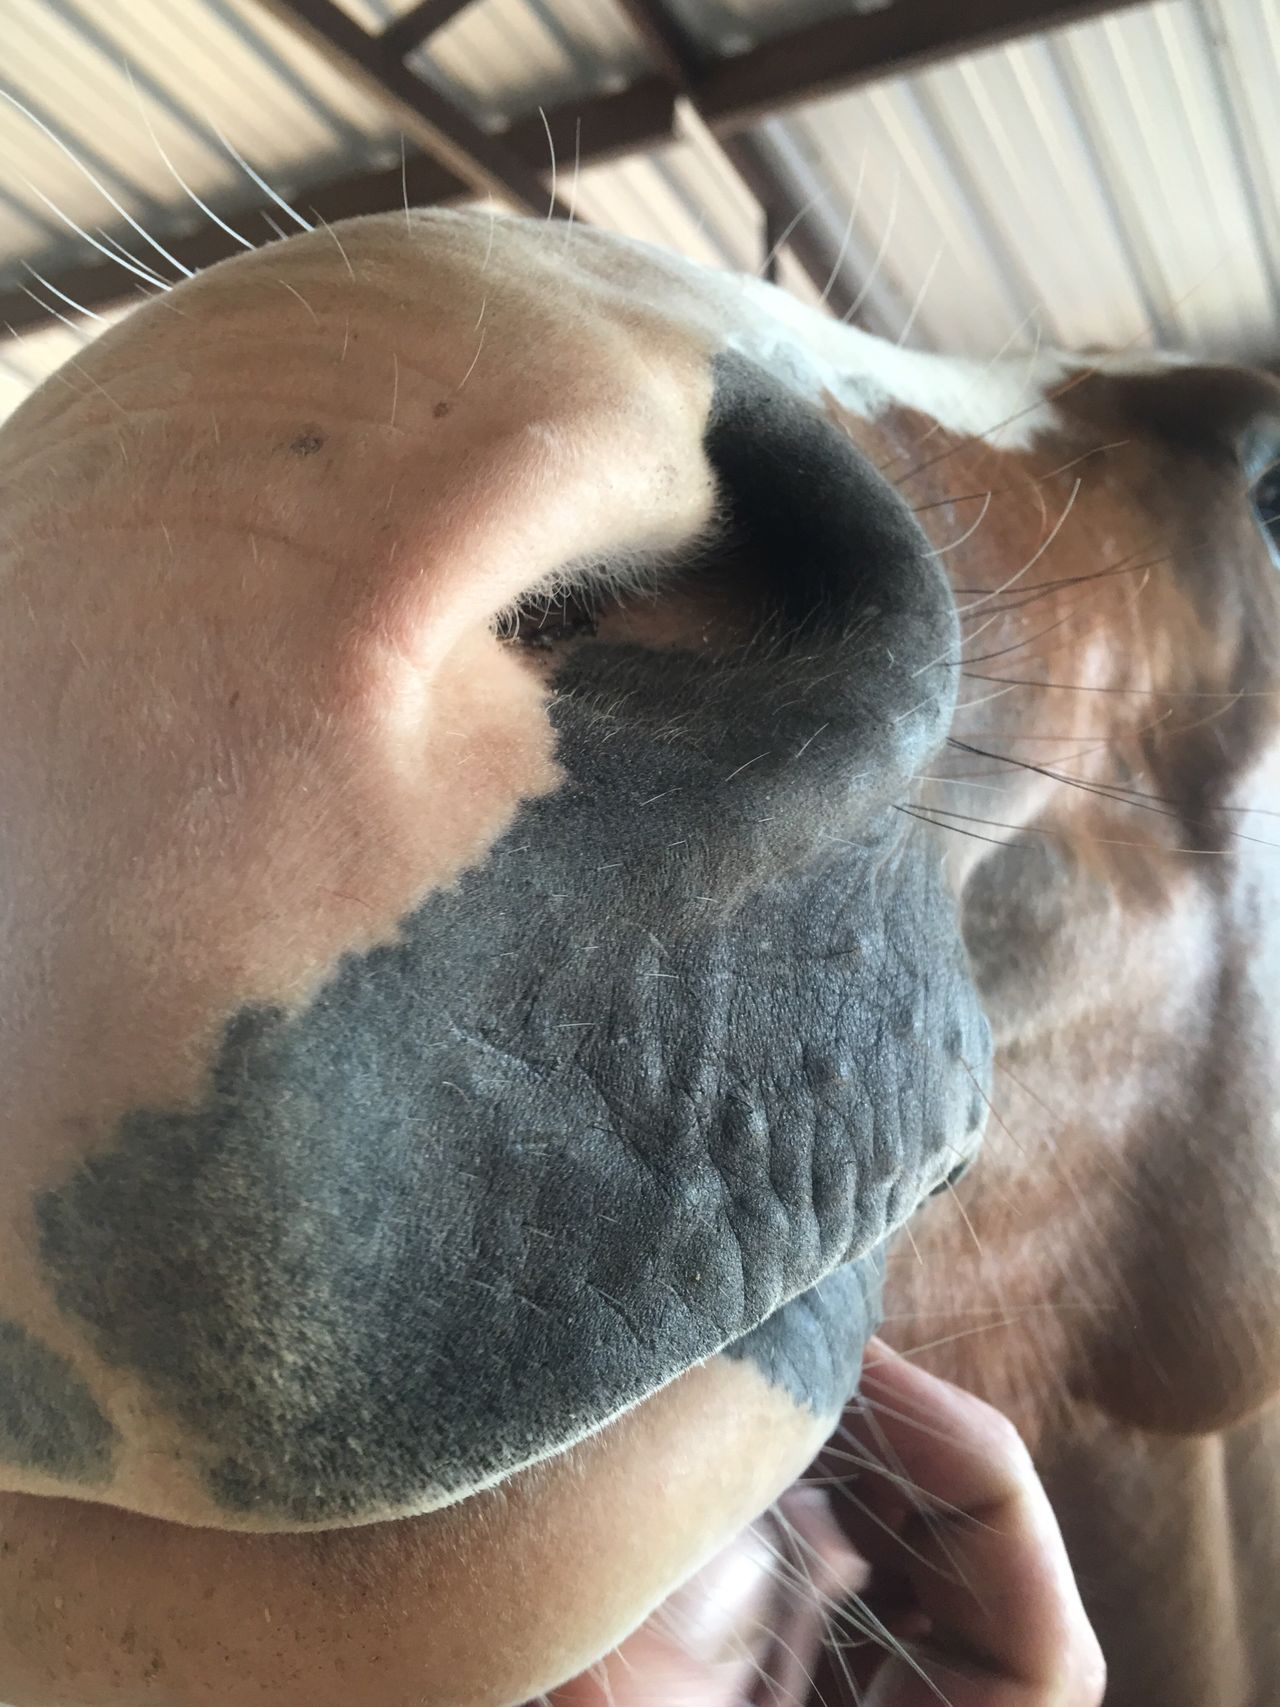 Horse Animal Themes One Animal Domestic Animals Pets Hand Close-up Mammal IPhone Relaxation Zoology Farm Animals Horses Horse Head Nose Muzzle Animal Nose Resting Animal Whisker Human Animal Interaction Close Up Focus On Foreground Snout Laziness